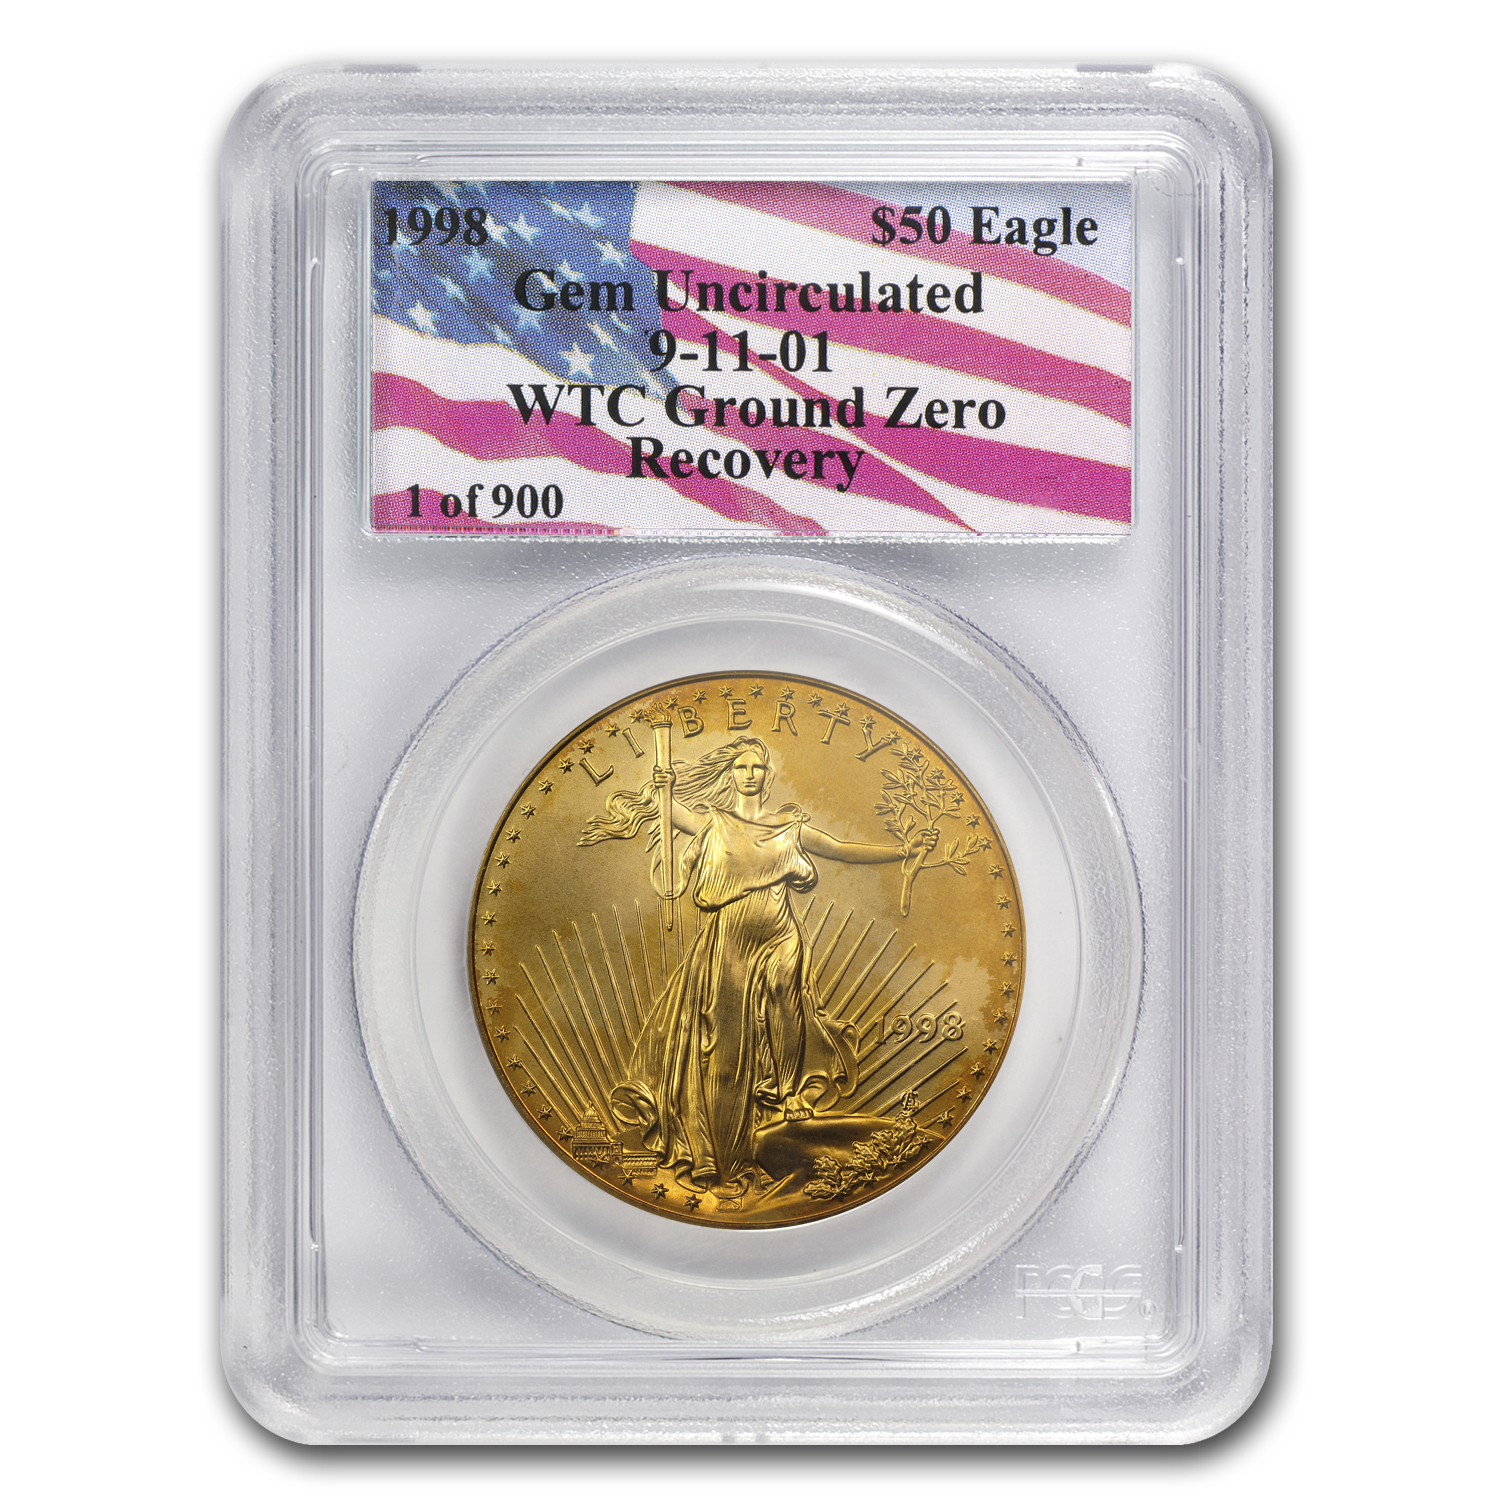 1998 1 oz Gold American Eagle Gem Unc PCGS (WTC, 1 of 900)